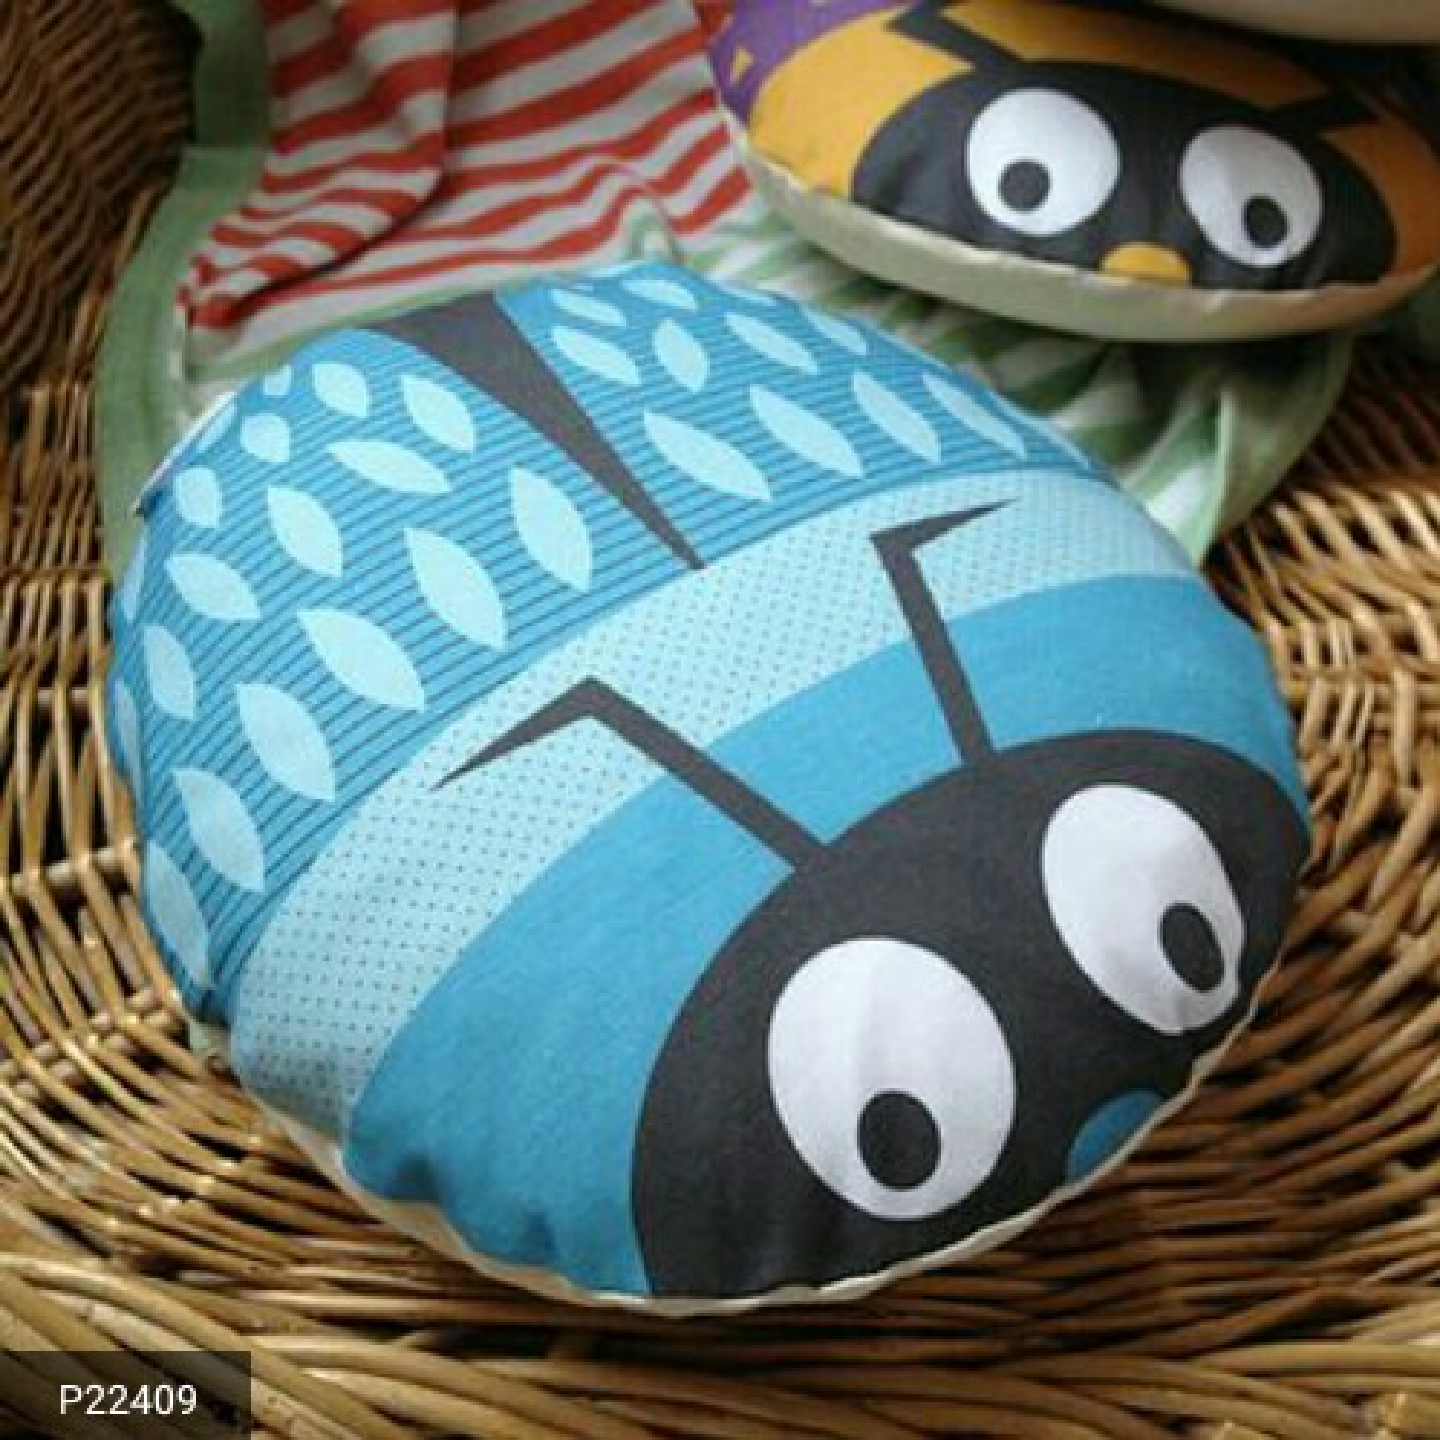 High Quality fiber-filled Bug shaped cushions for Kids and Home Decor !